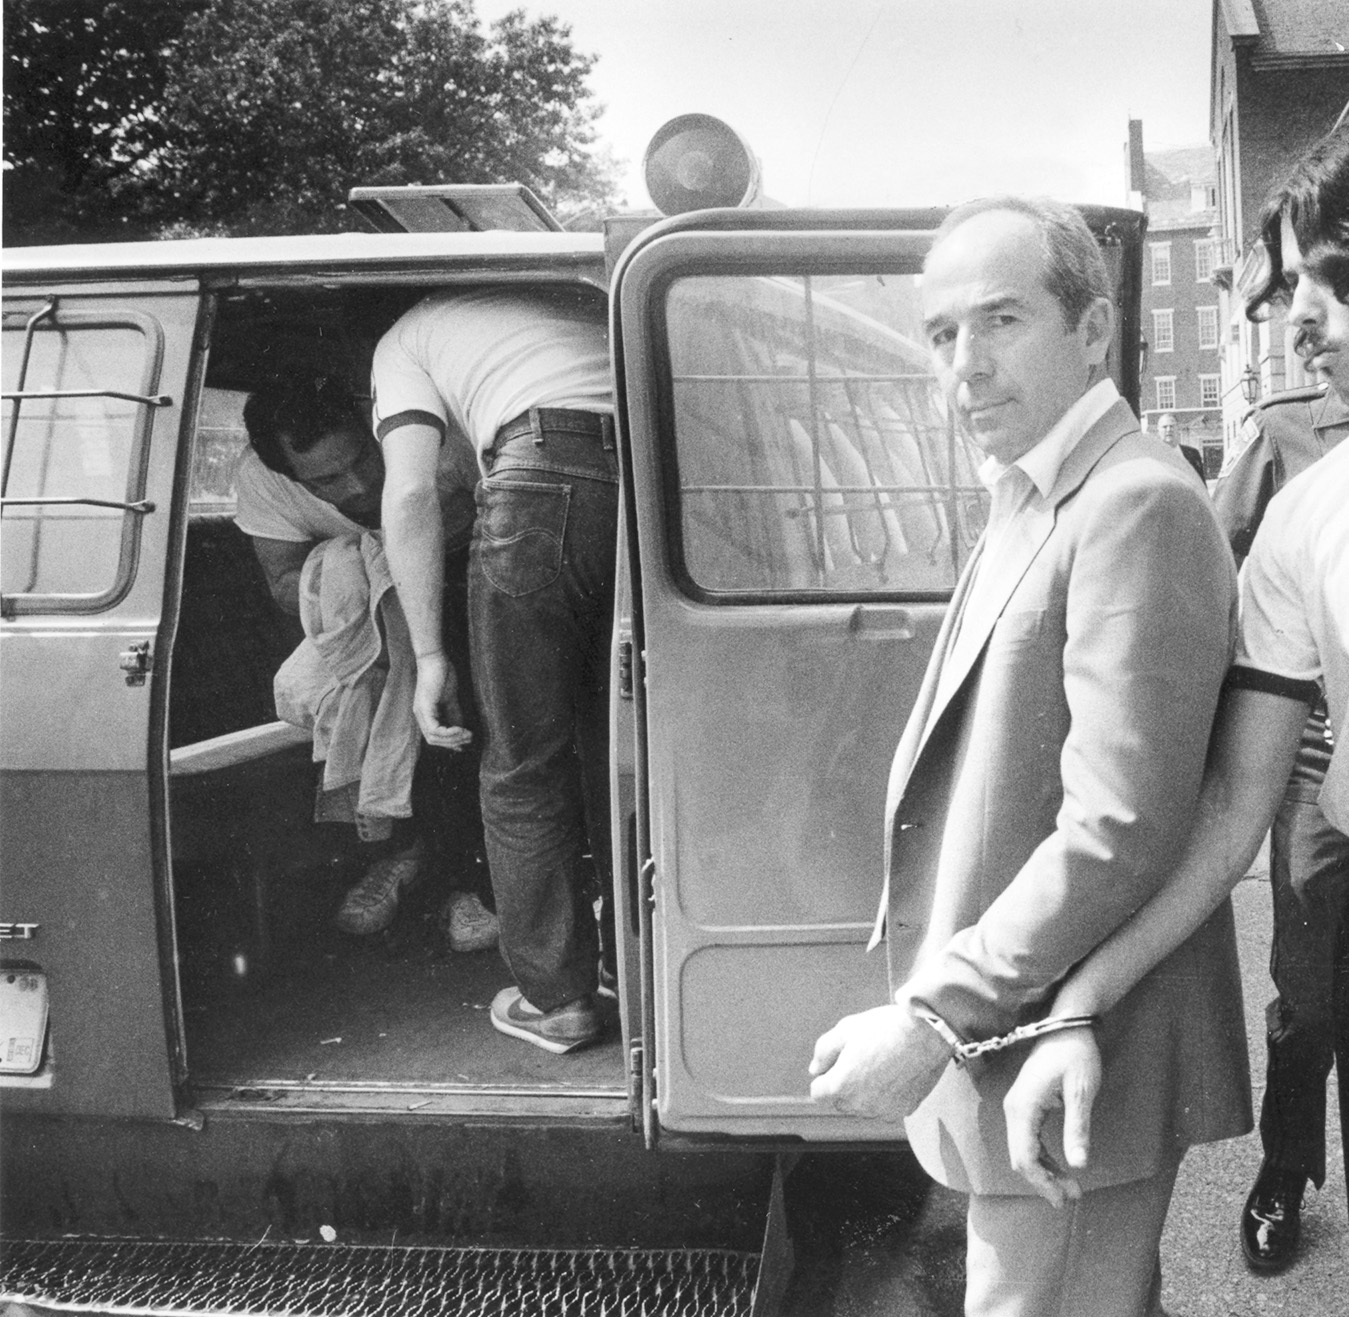 Manocchio is escorted from Superior Court in Providence, where he was found guilty on several counts in connection with the 1968 gangland slaying of Rudolph Marfeo and Anthony Melei.  Courtesy of The Providence Journal/Richard Benjamin.